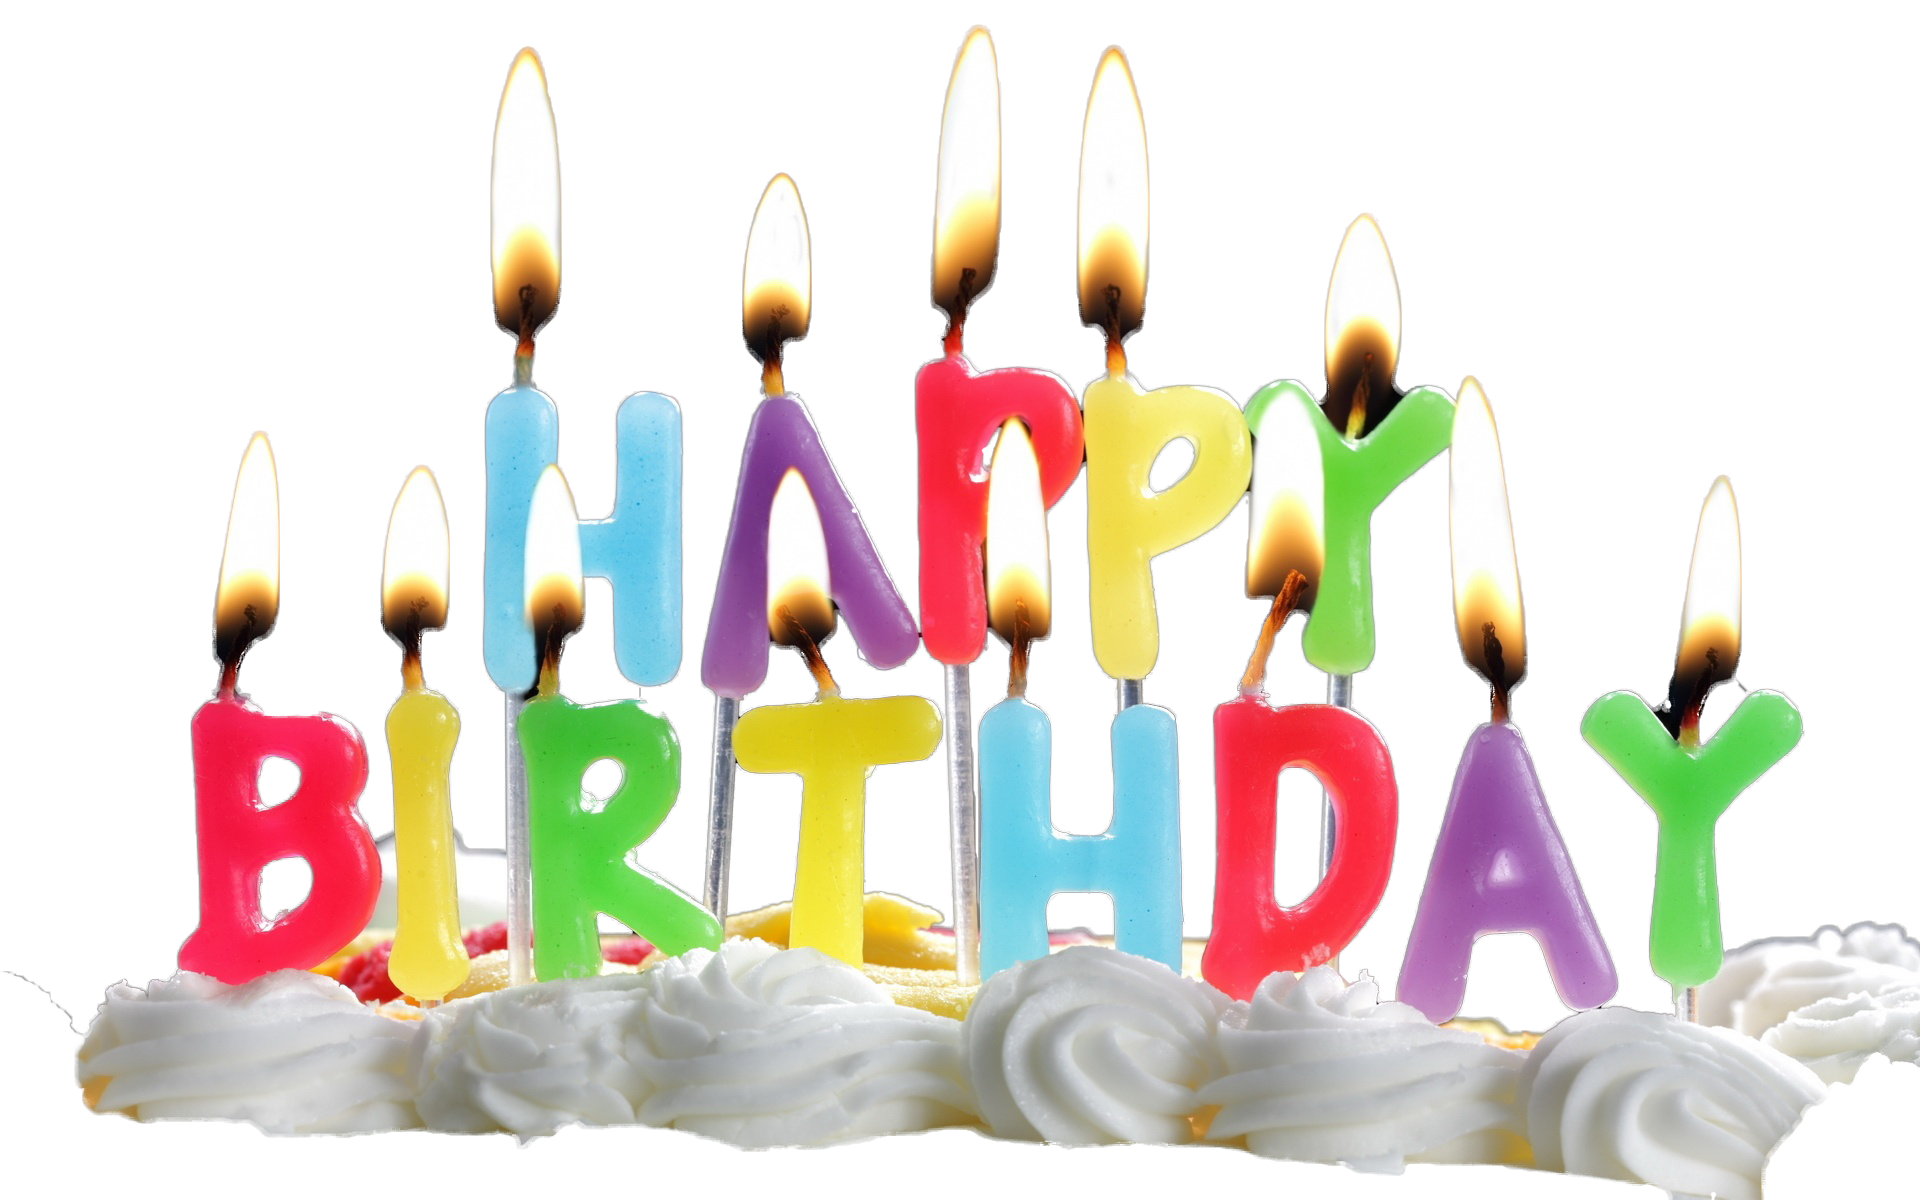 Birthday Candles Transparent PNG Image - Birthday Candles PNG